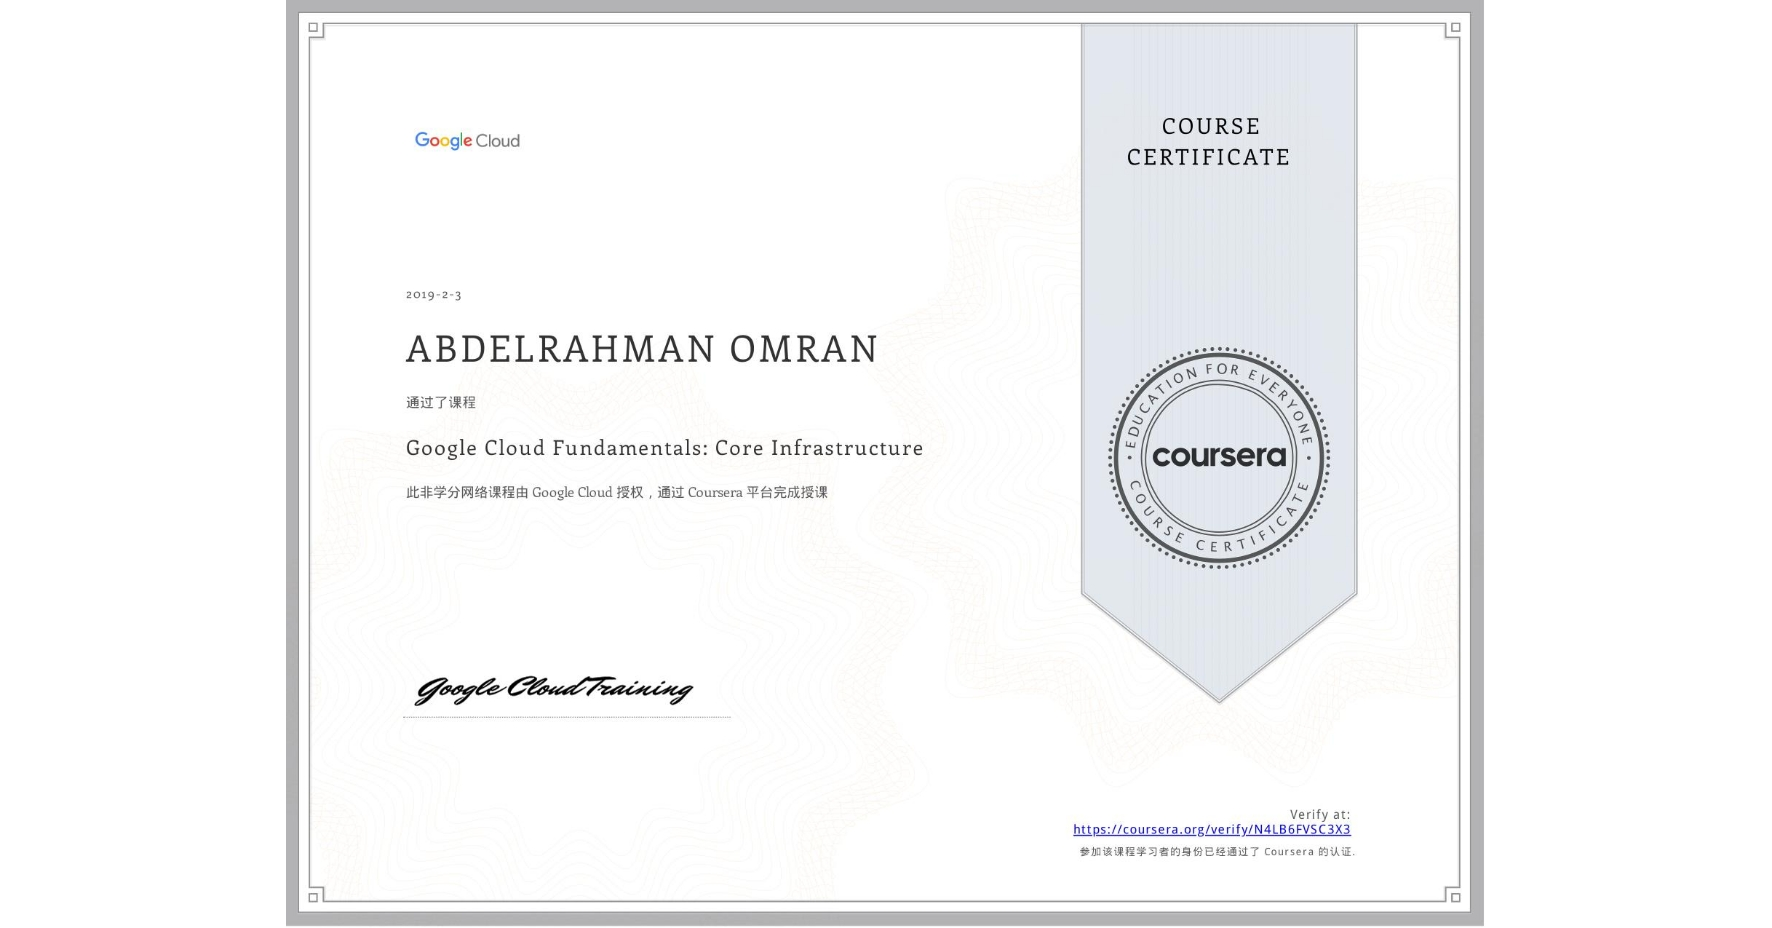 View certificate for ABDELRAHMAN OMRAN, Google Cloud Platform Fundamentals: Core Infrastructure, an online non-credit course authorized by Google Cloud and offered through Coursera